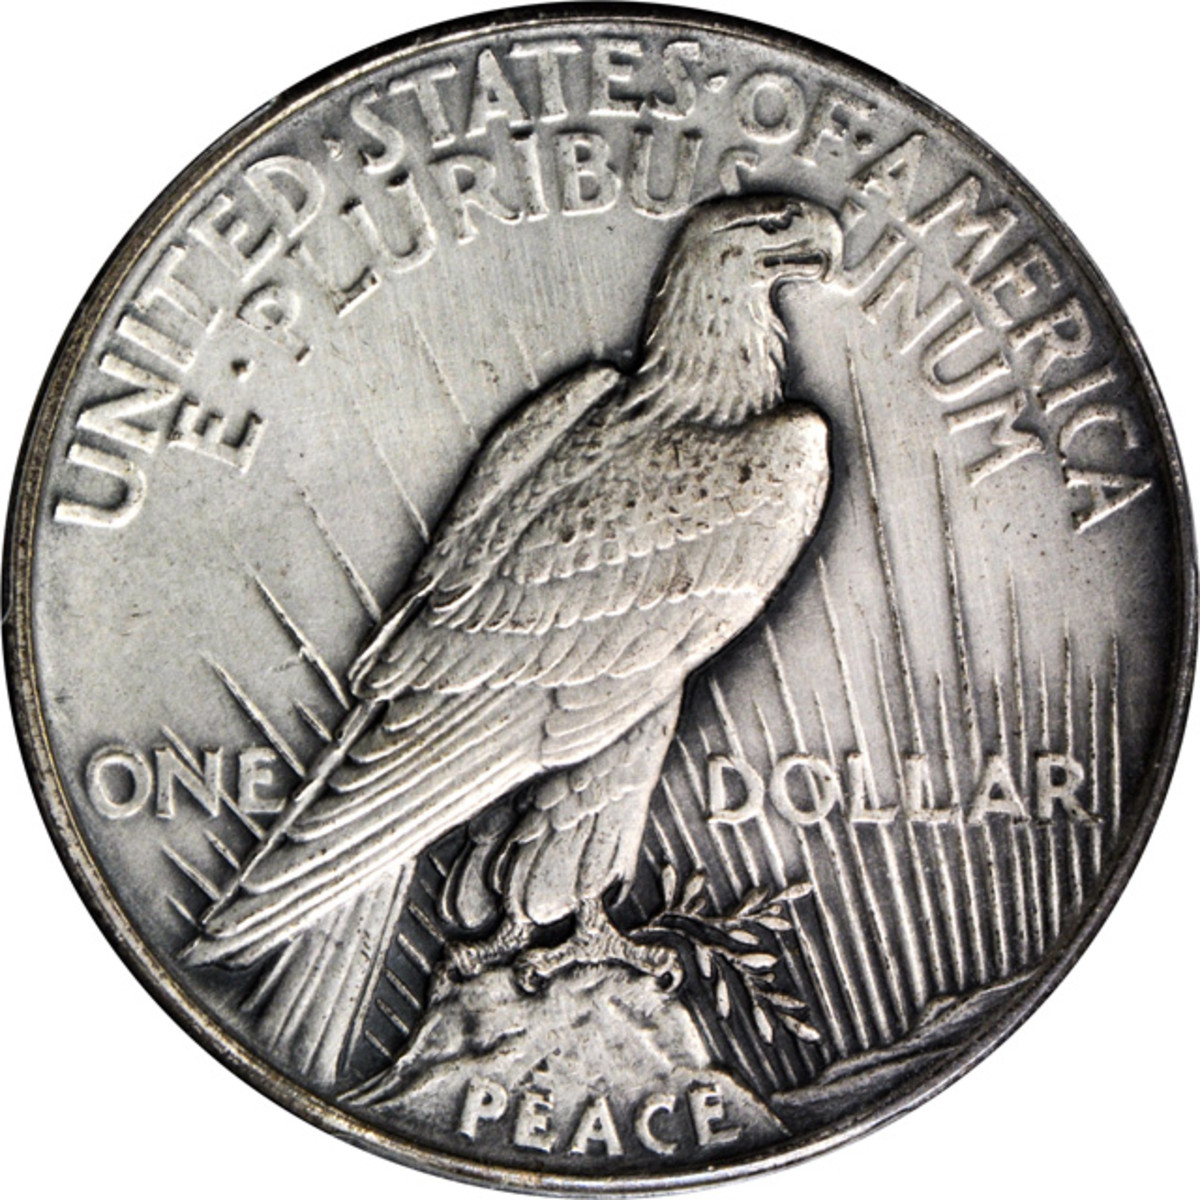 Lot 13166. 1921 Peace silver dollar. High Relief. Sandblast or Matte Finish, Antiqued. PCGS Specimen-64. Ex: Raymond T. Baker Estate.